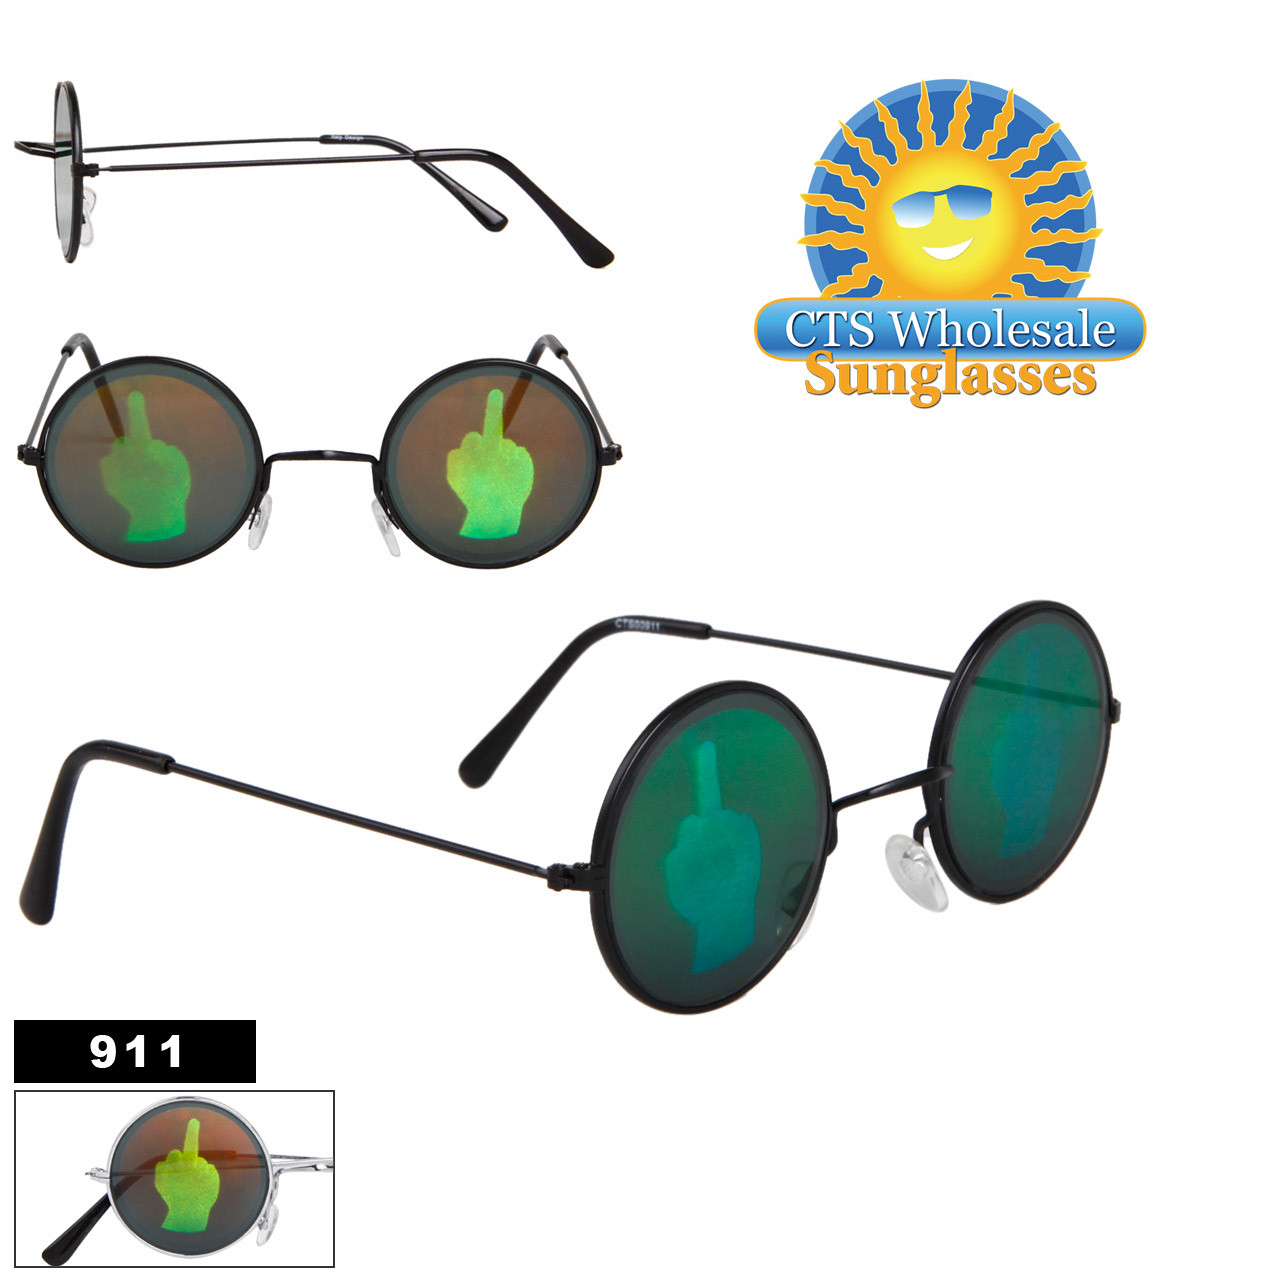 Middle Finger Hologram Sunglasses 911